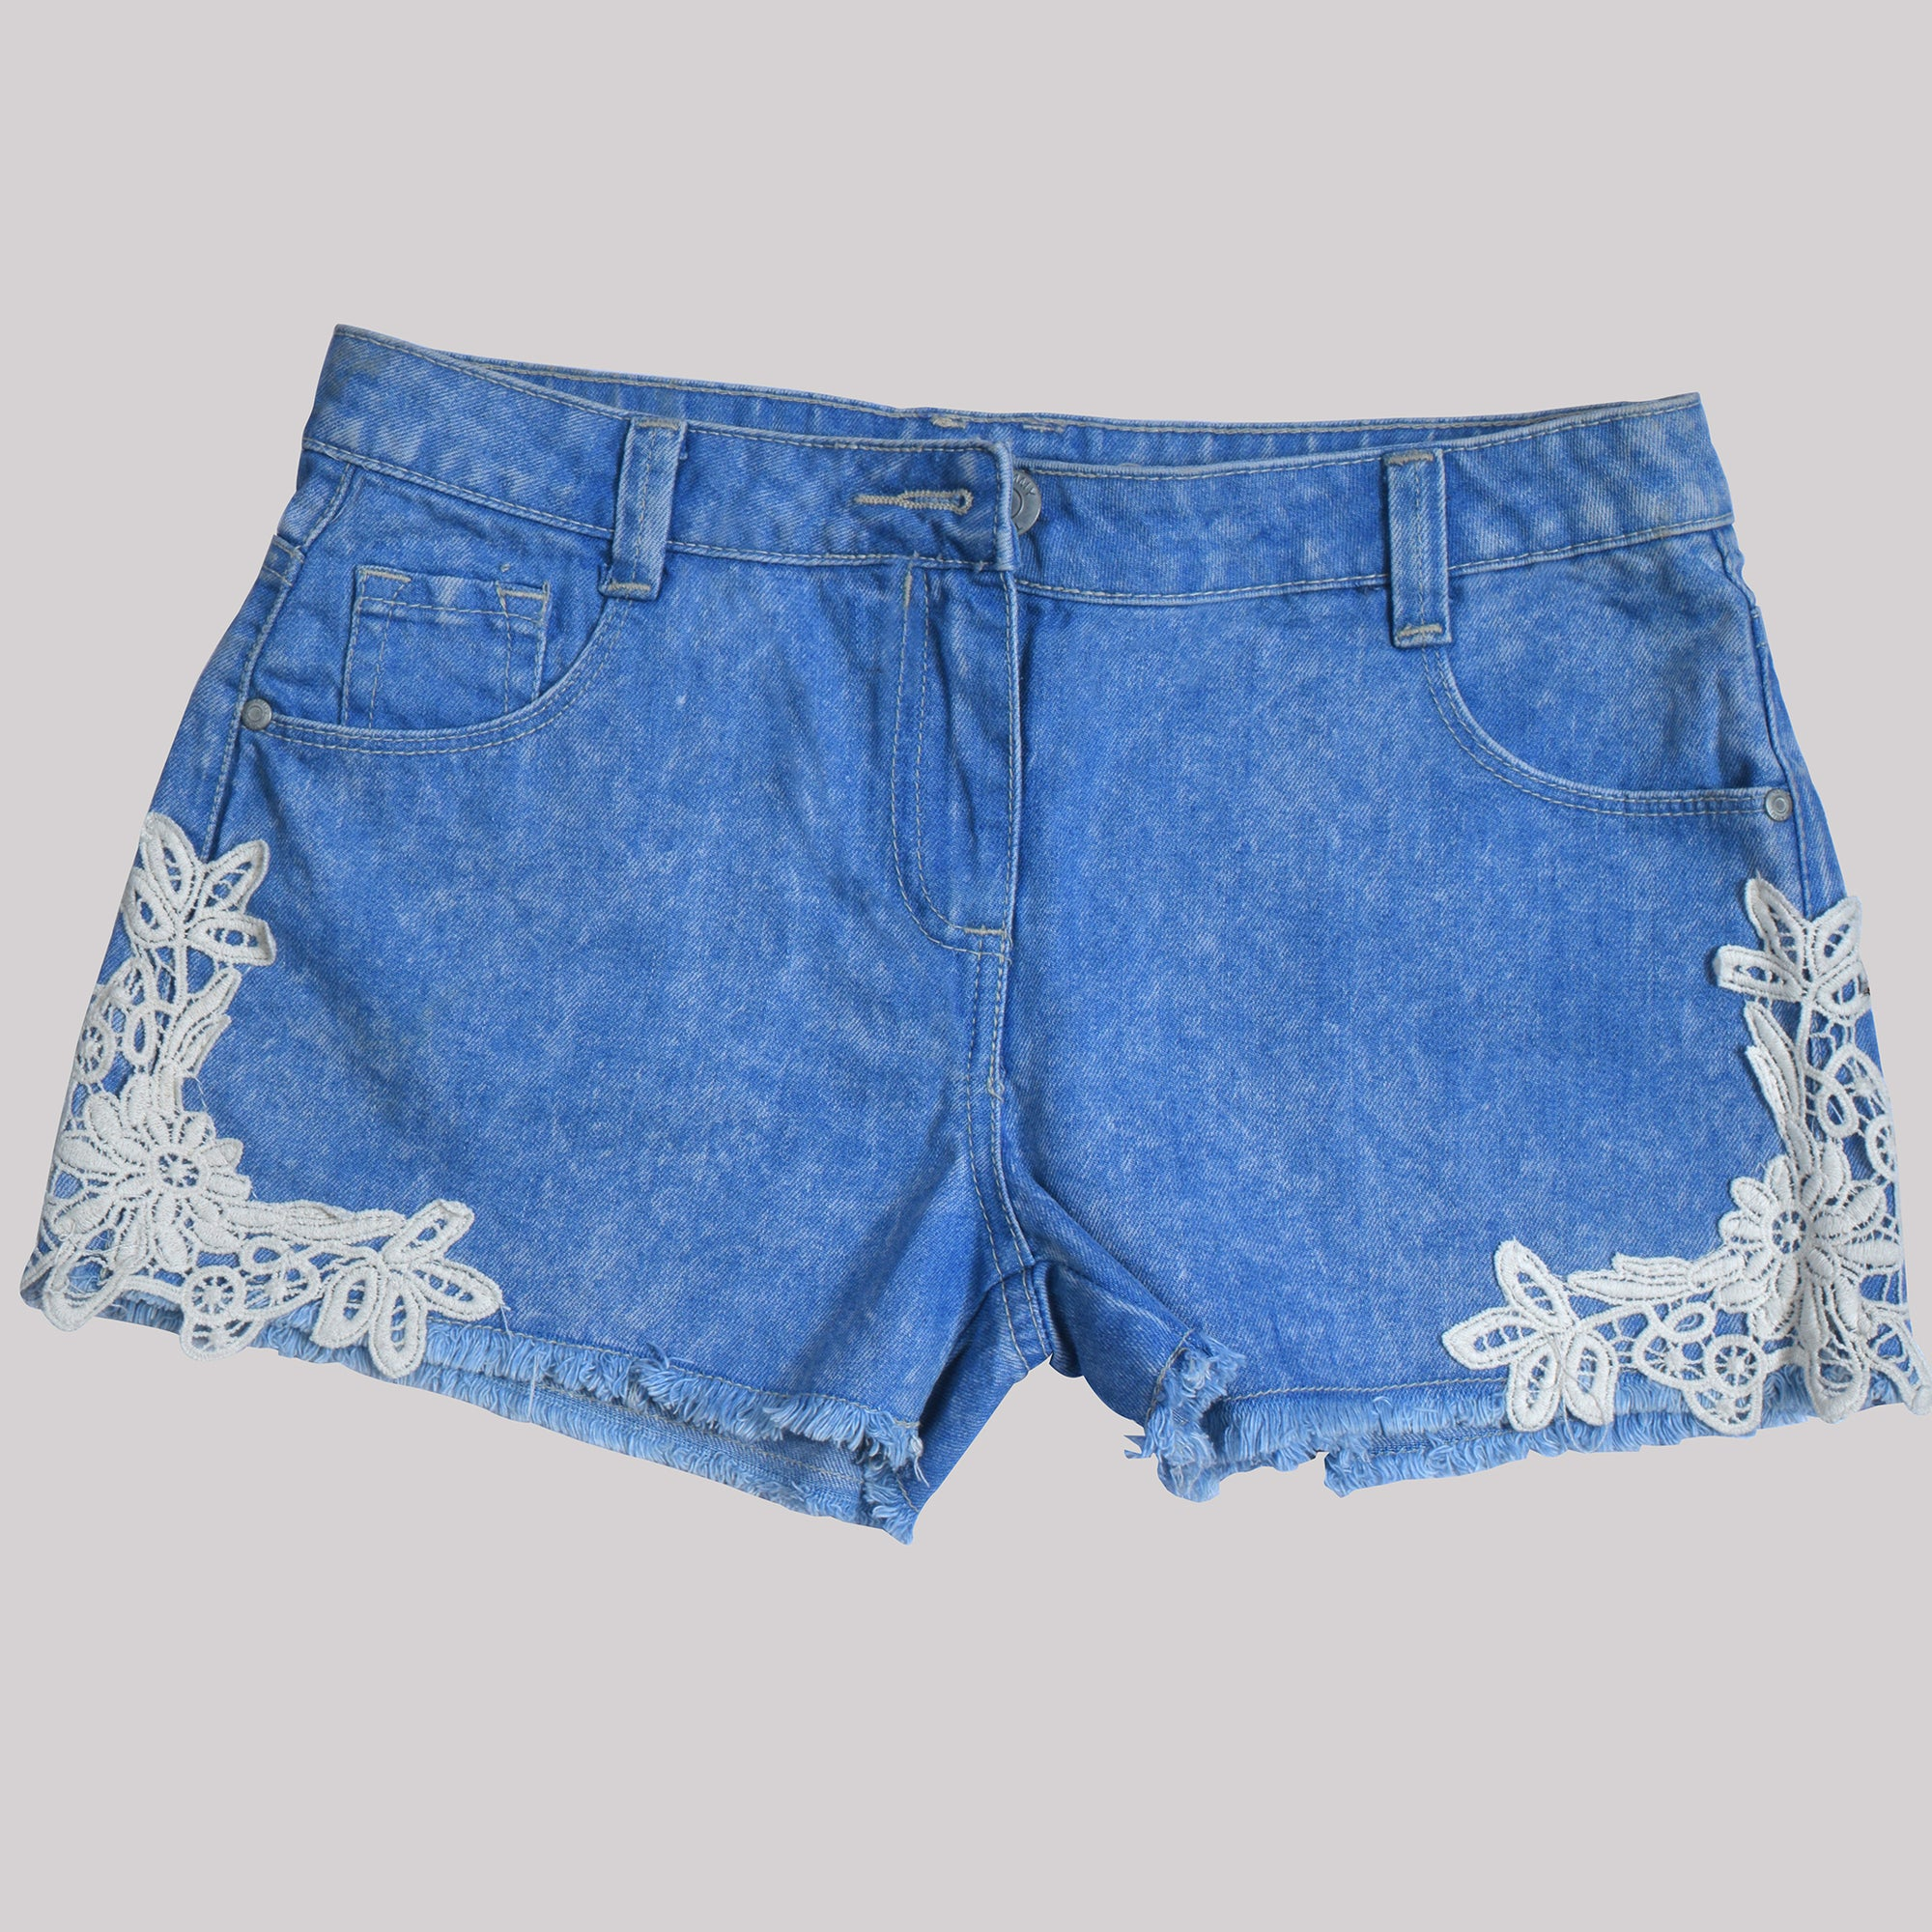 brandsego - Tammy Girl Denim Short For Girls-Blue With Dirty Wash-SP527